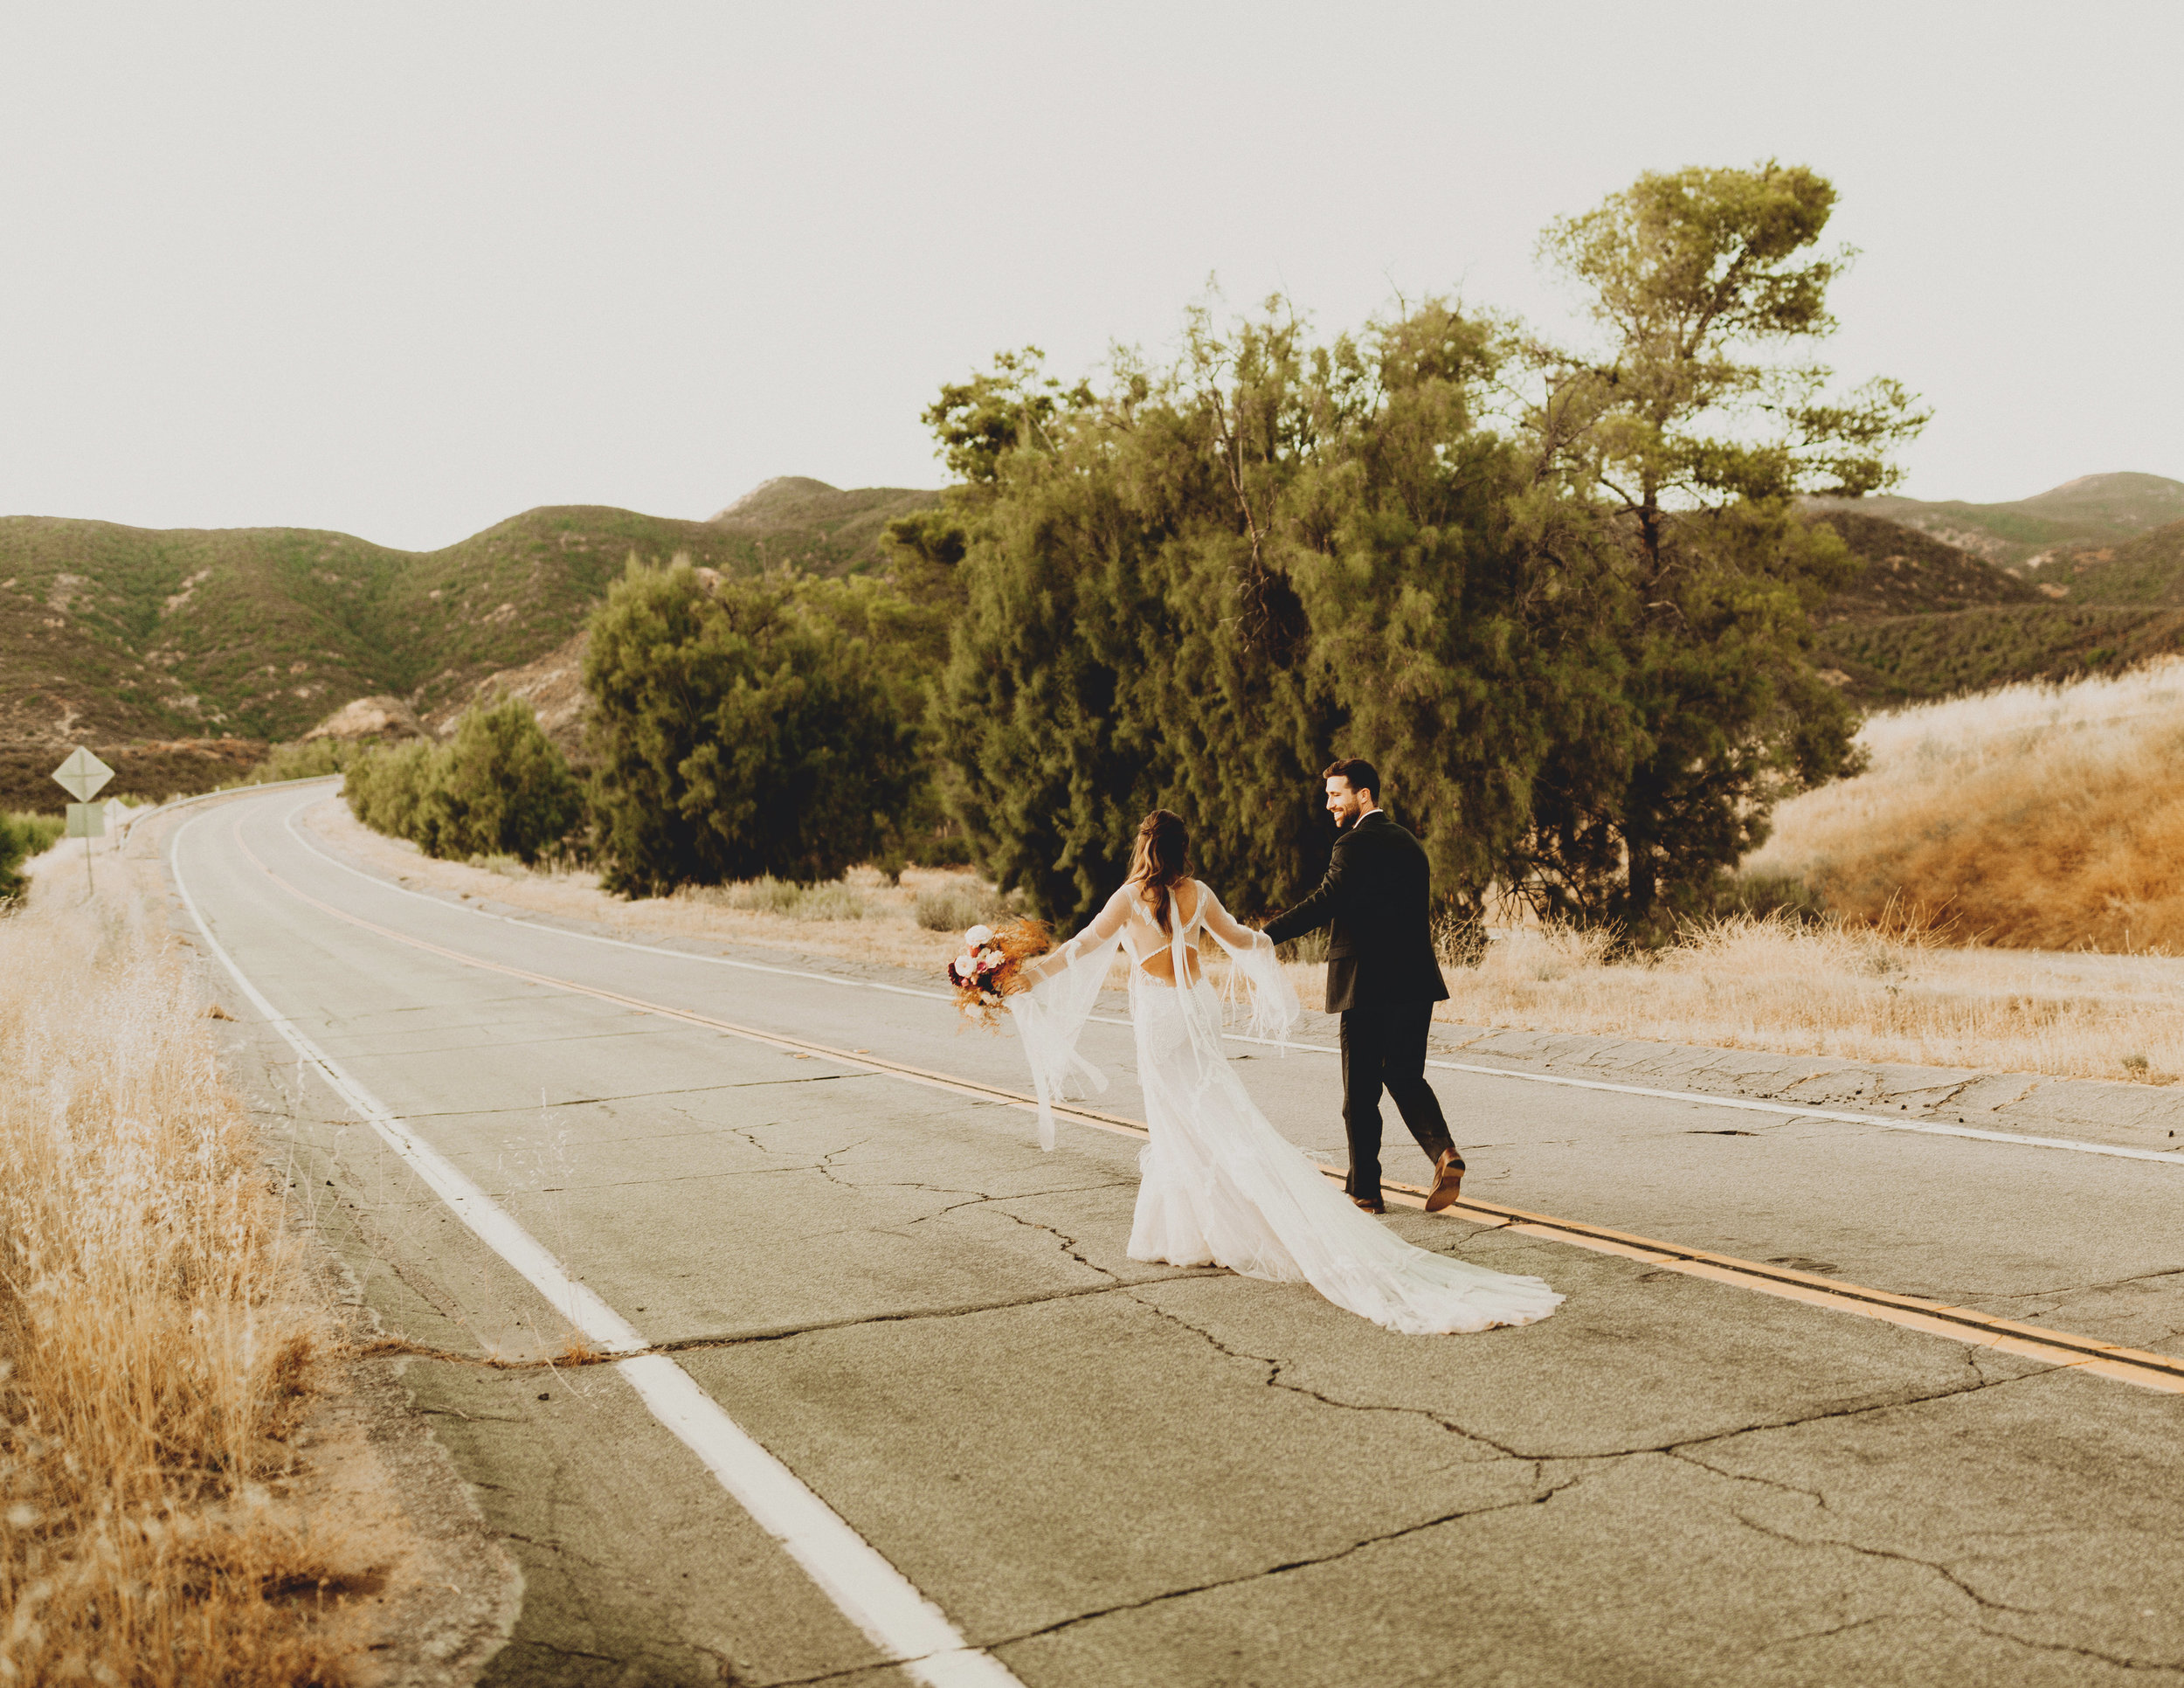 -California_Elopement_NellyCabanillas_Photography5130 copy.jpg